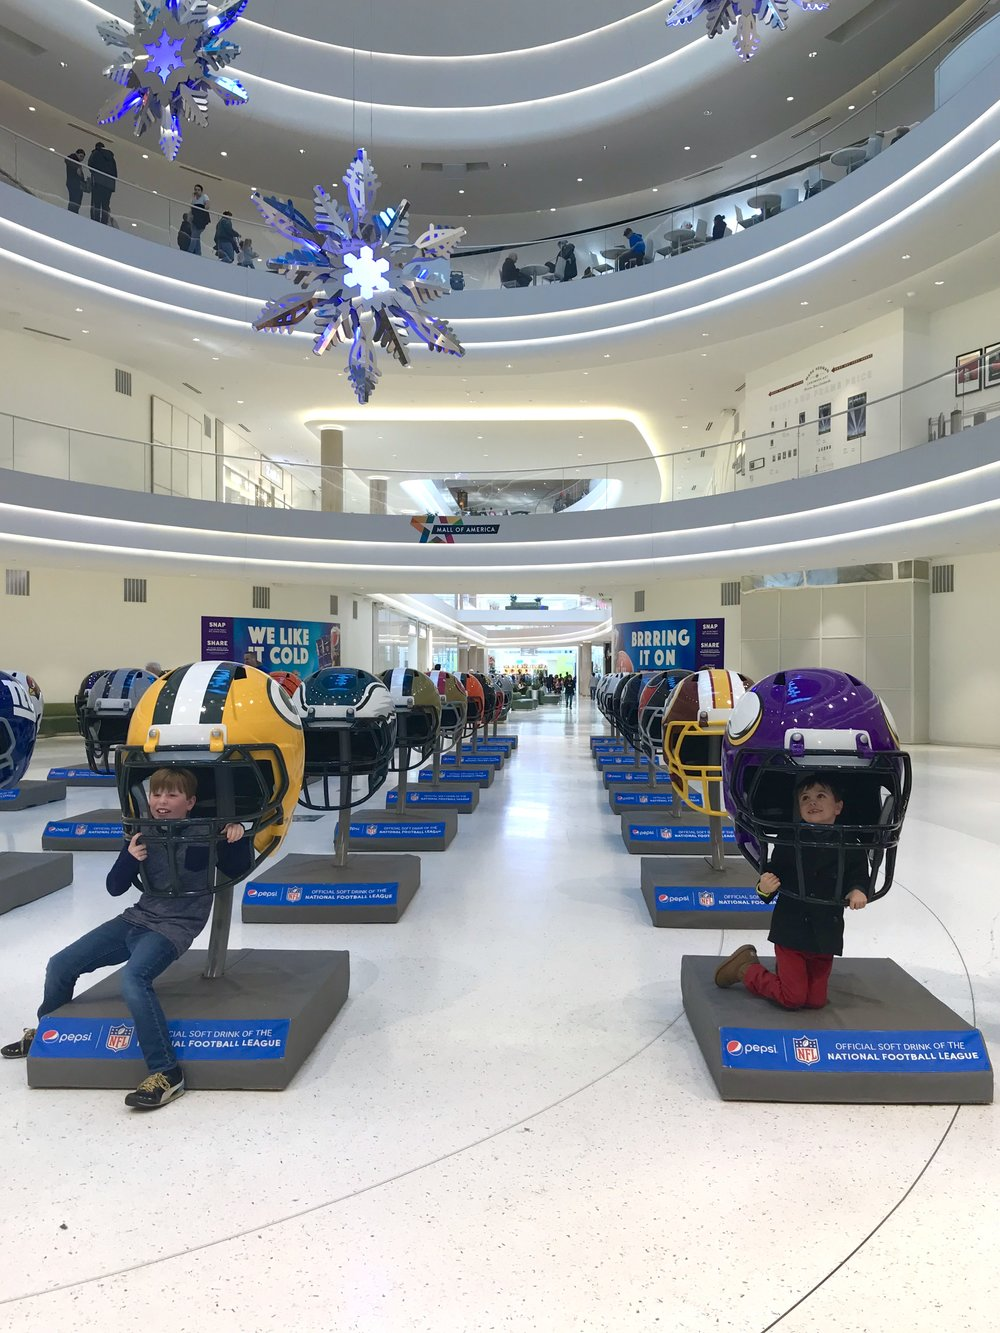 A visit to the Mall of America - they're getting ready for the Superbowl!